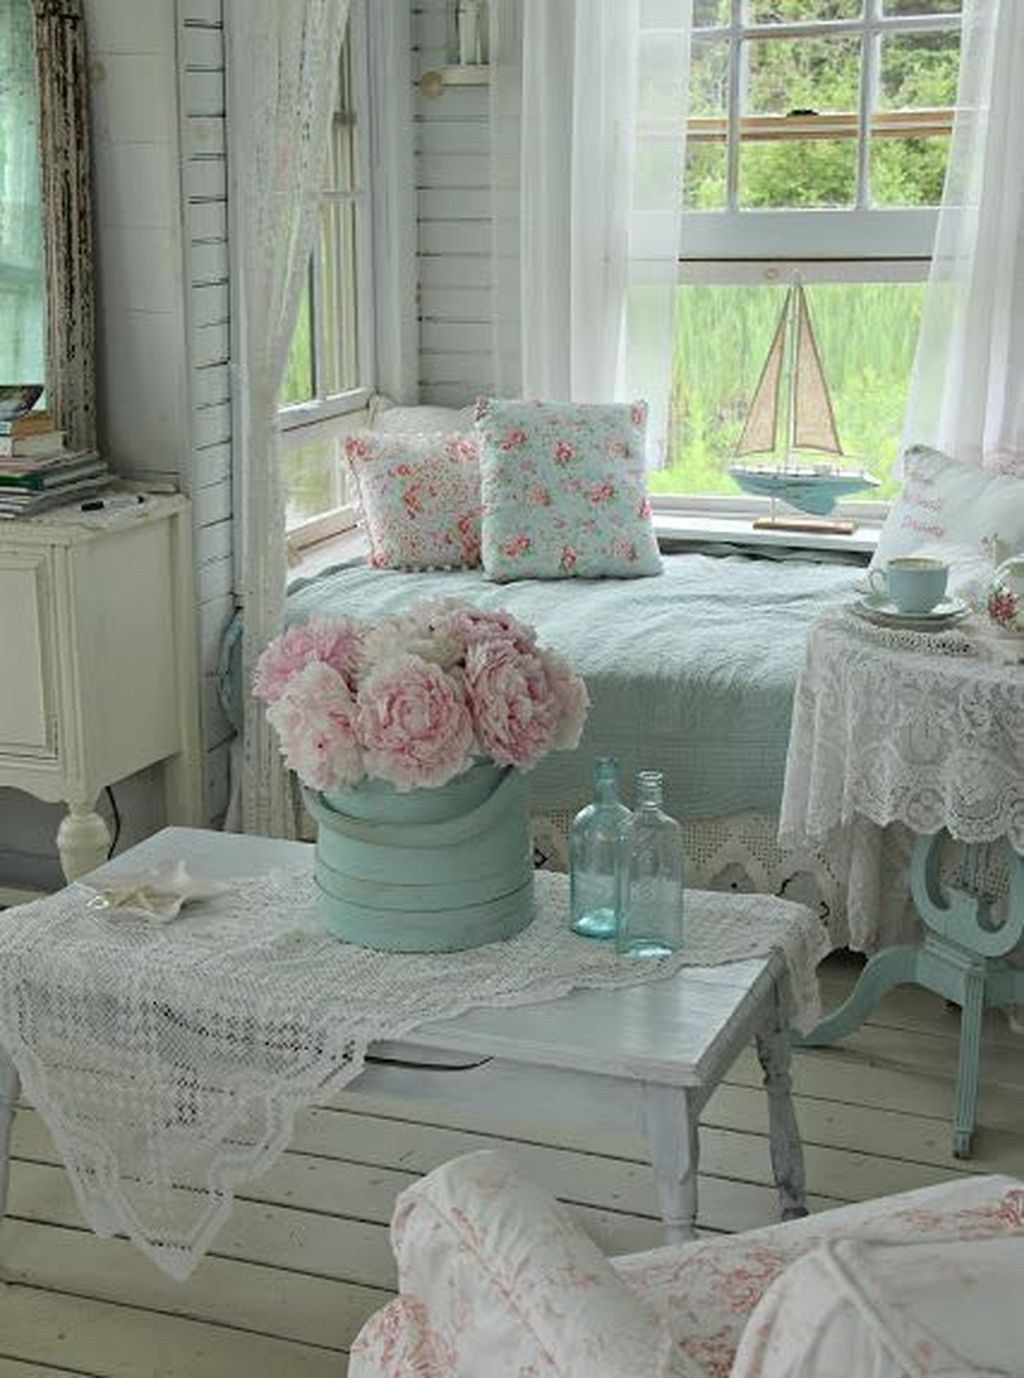 44 + Modern Shabby Chic Bedroom Ideas